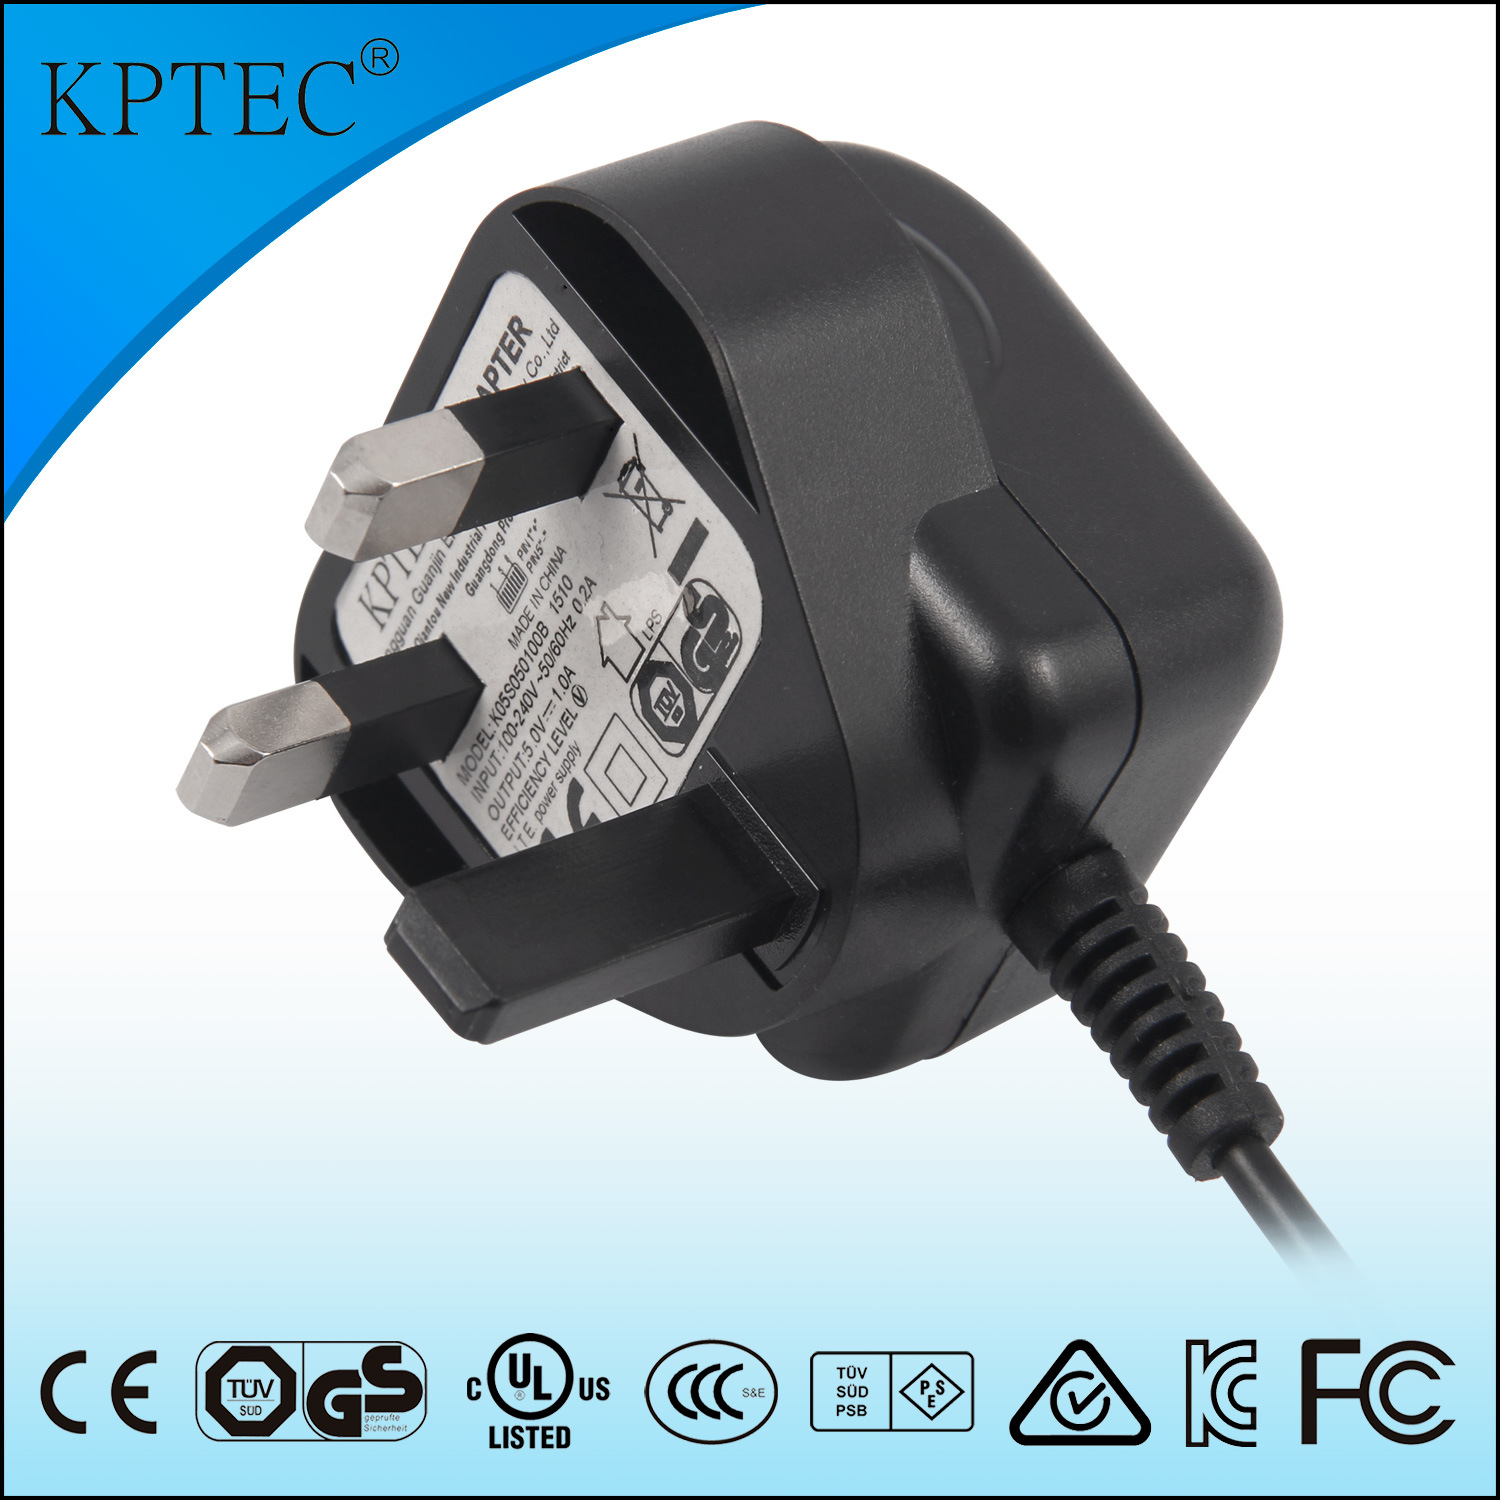 Kptec AC/DC Adapter with Ce Certificate 5V 1A